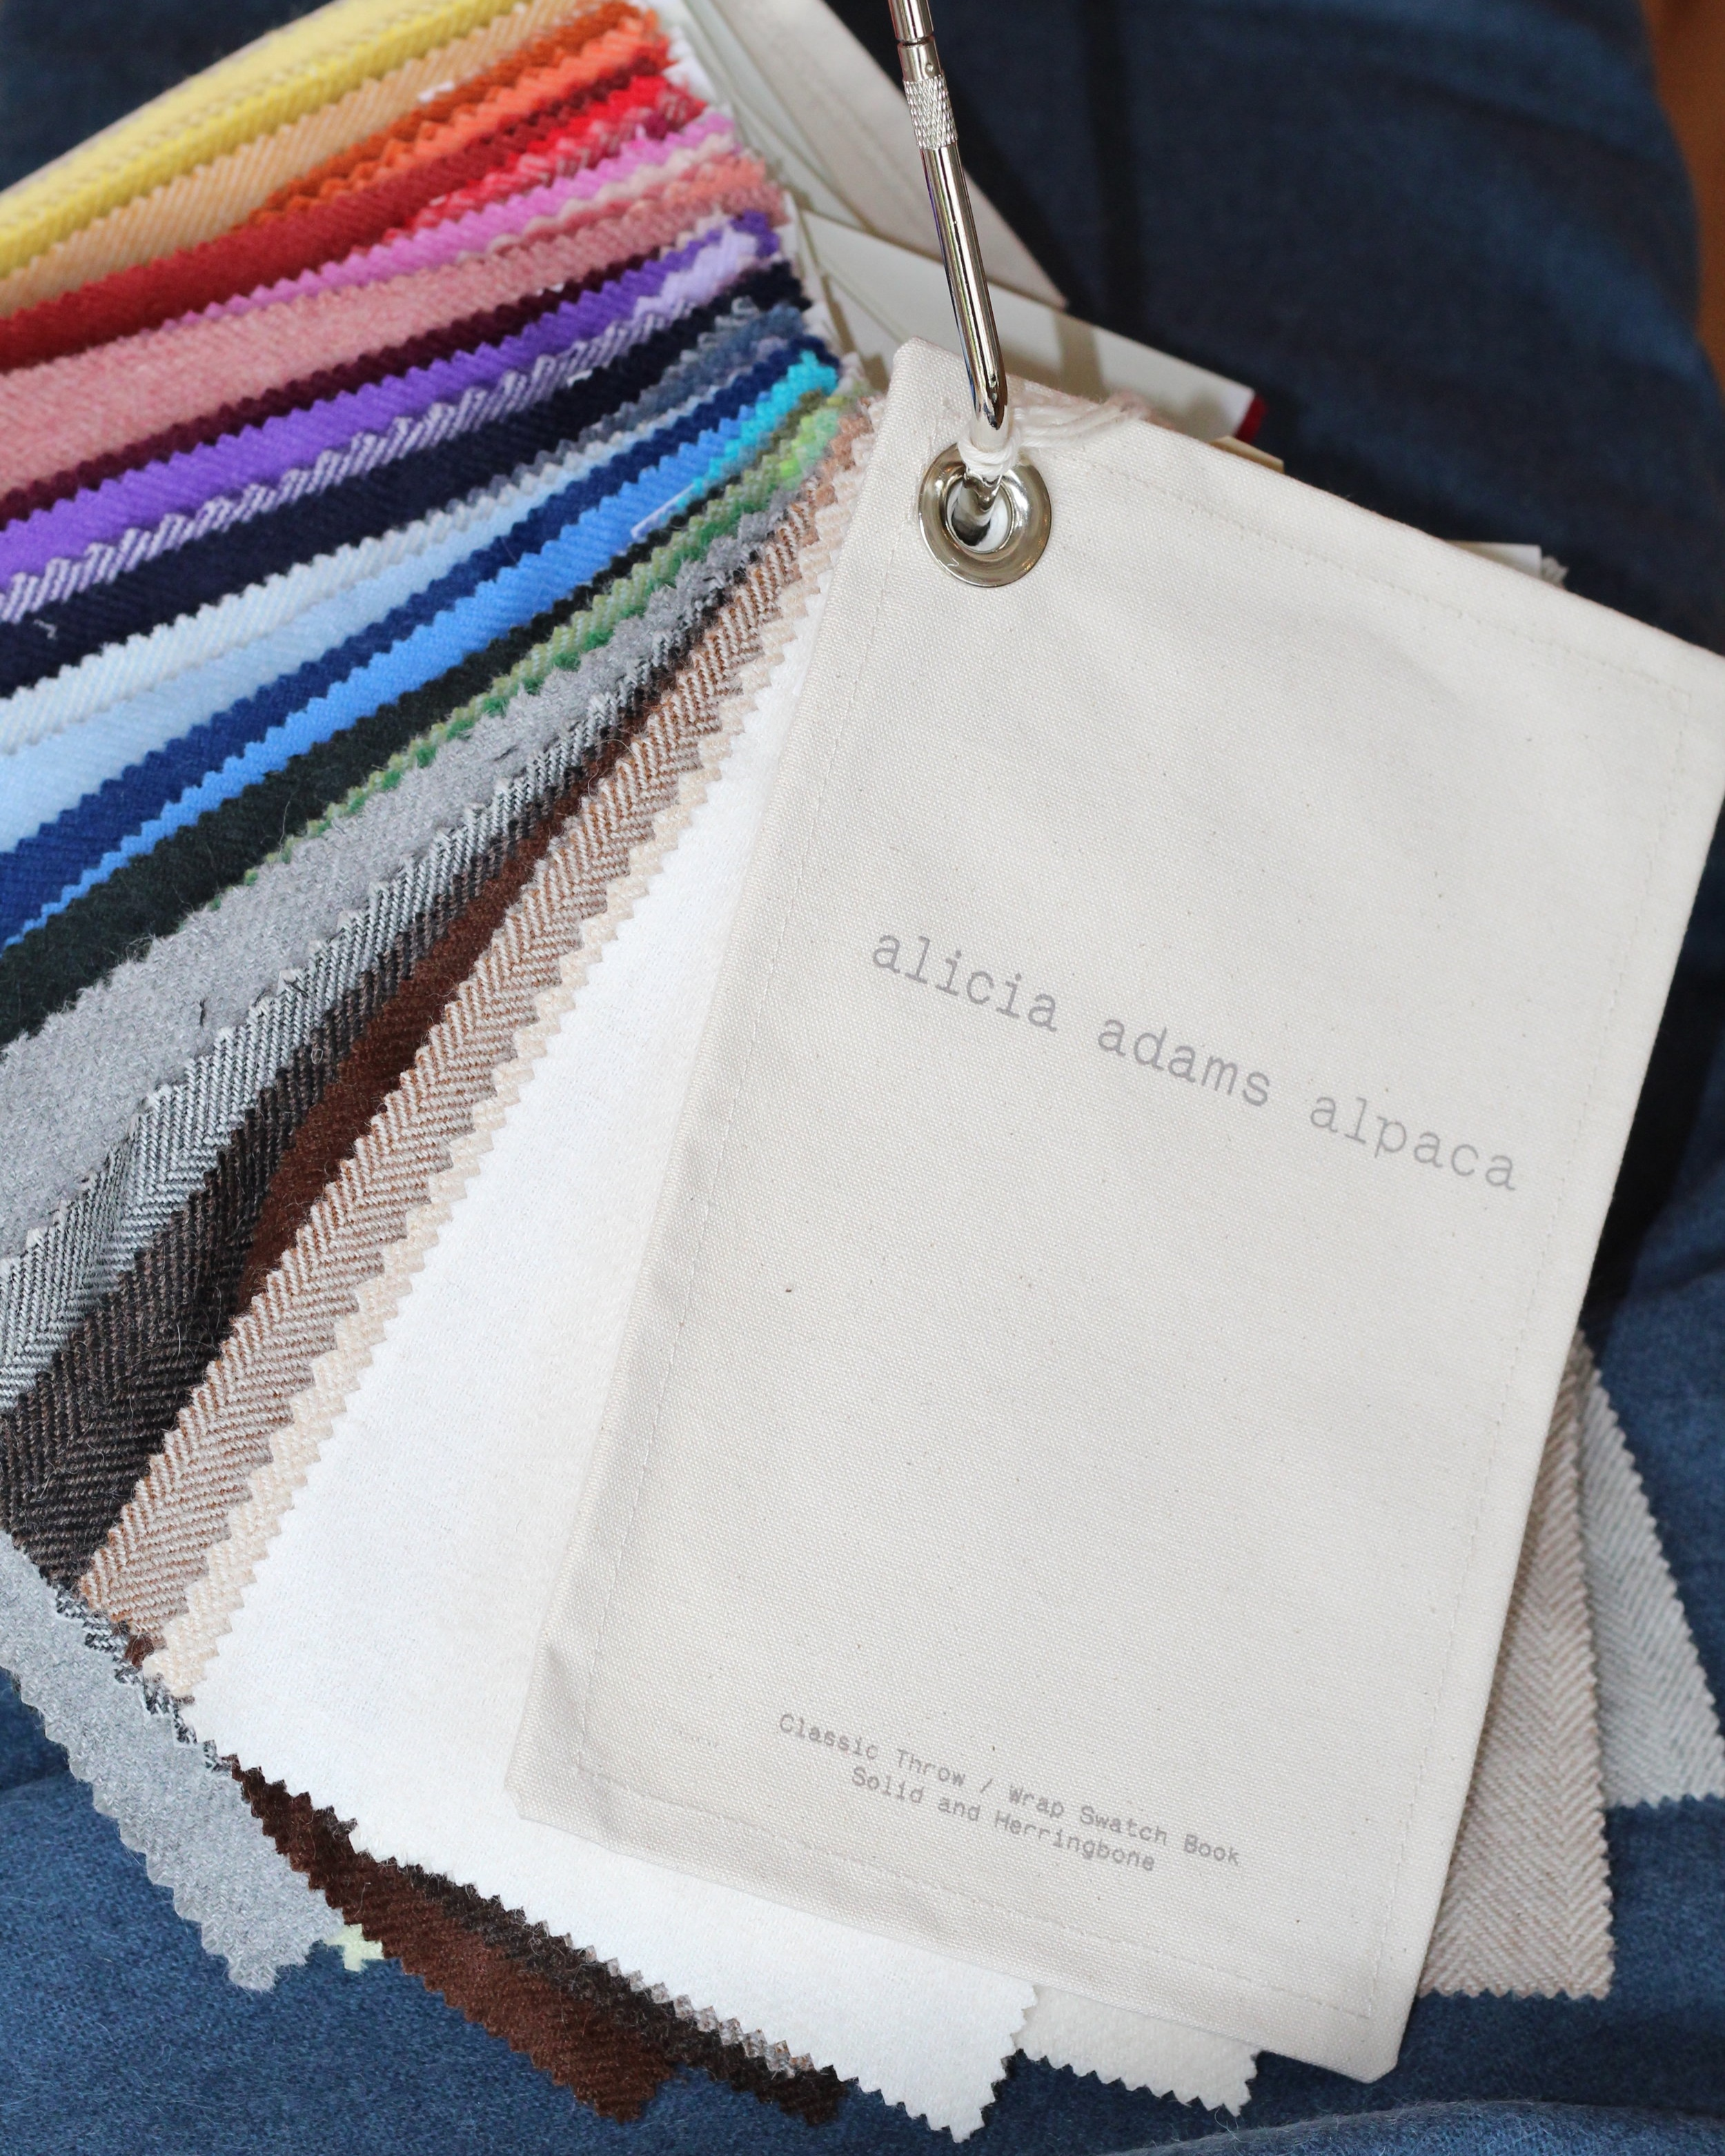 Alicia Adams Alpaca   Alicia Adams Alpaca Inc. is a family business which specializes in the design and production of textiles and clothing utilizing the natural and sustainable characteristics of one of the rarest and most luxurious materials – alpaca wool. Alpaca wool, one of the world's most luxurious fibers, is a jewel amid all the synthetic fibers and harsh materials found in our everyday lives. Softer than cashmere, and available in a wide array of colors, alpaca serves as a natural thermostat by using microscopic air pockets to trap body heat in cooler temperatures and to release heat in warmer weather.